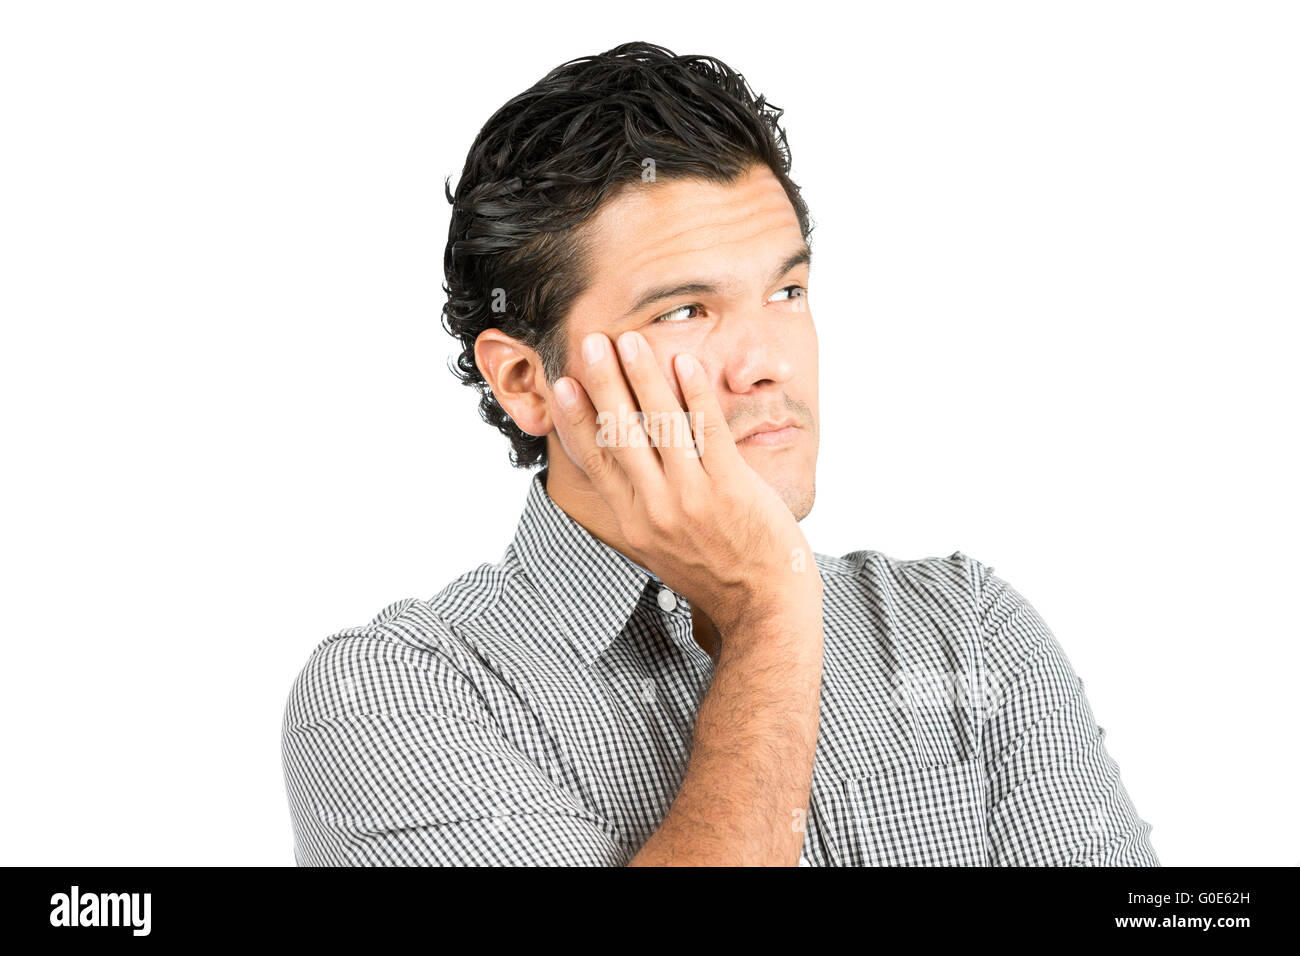 Worried Serious Thoughts Latino Man Head In Hand - Stock Image